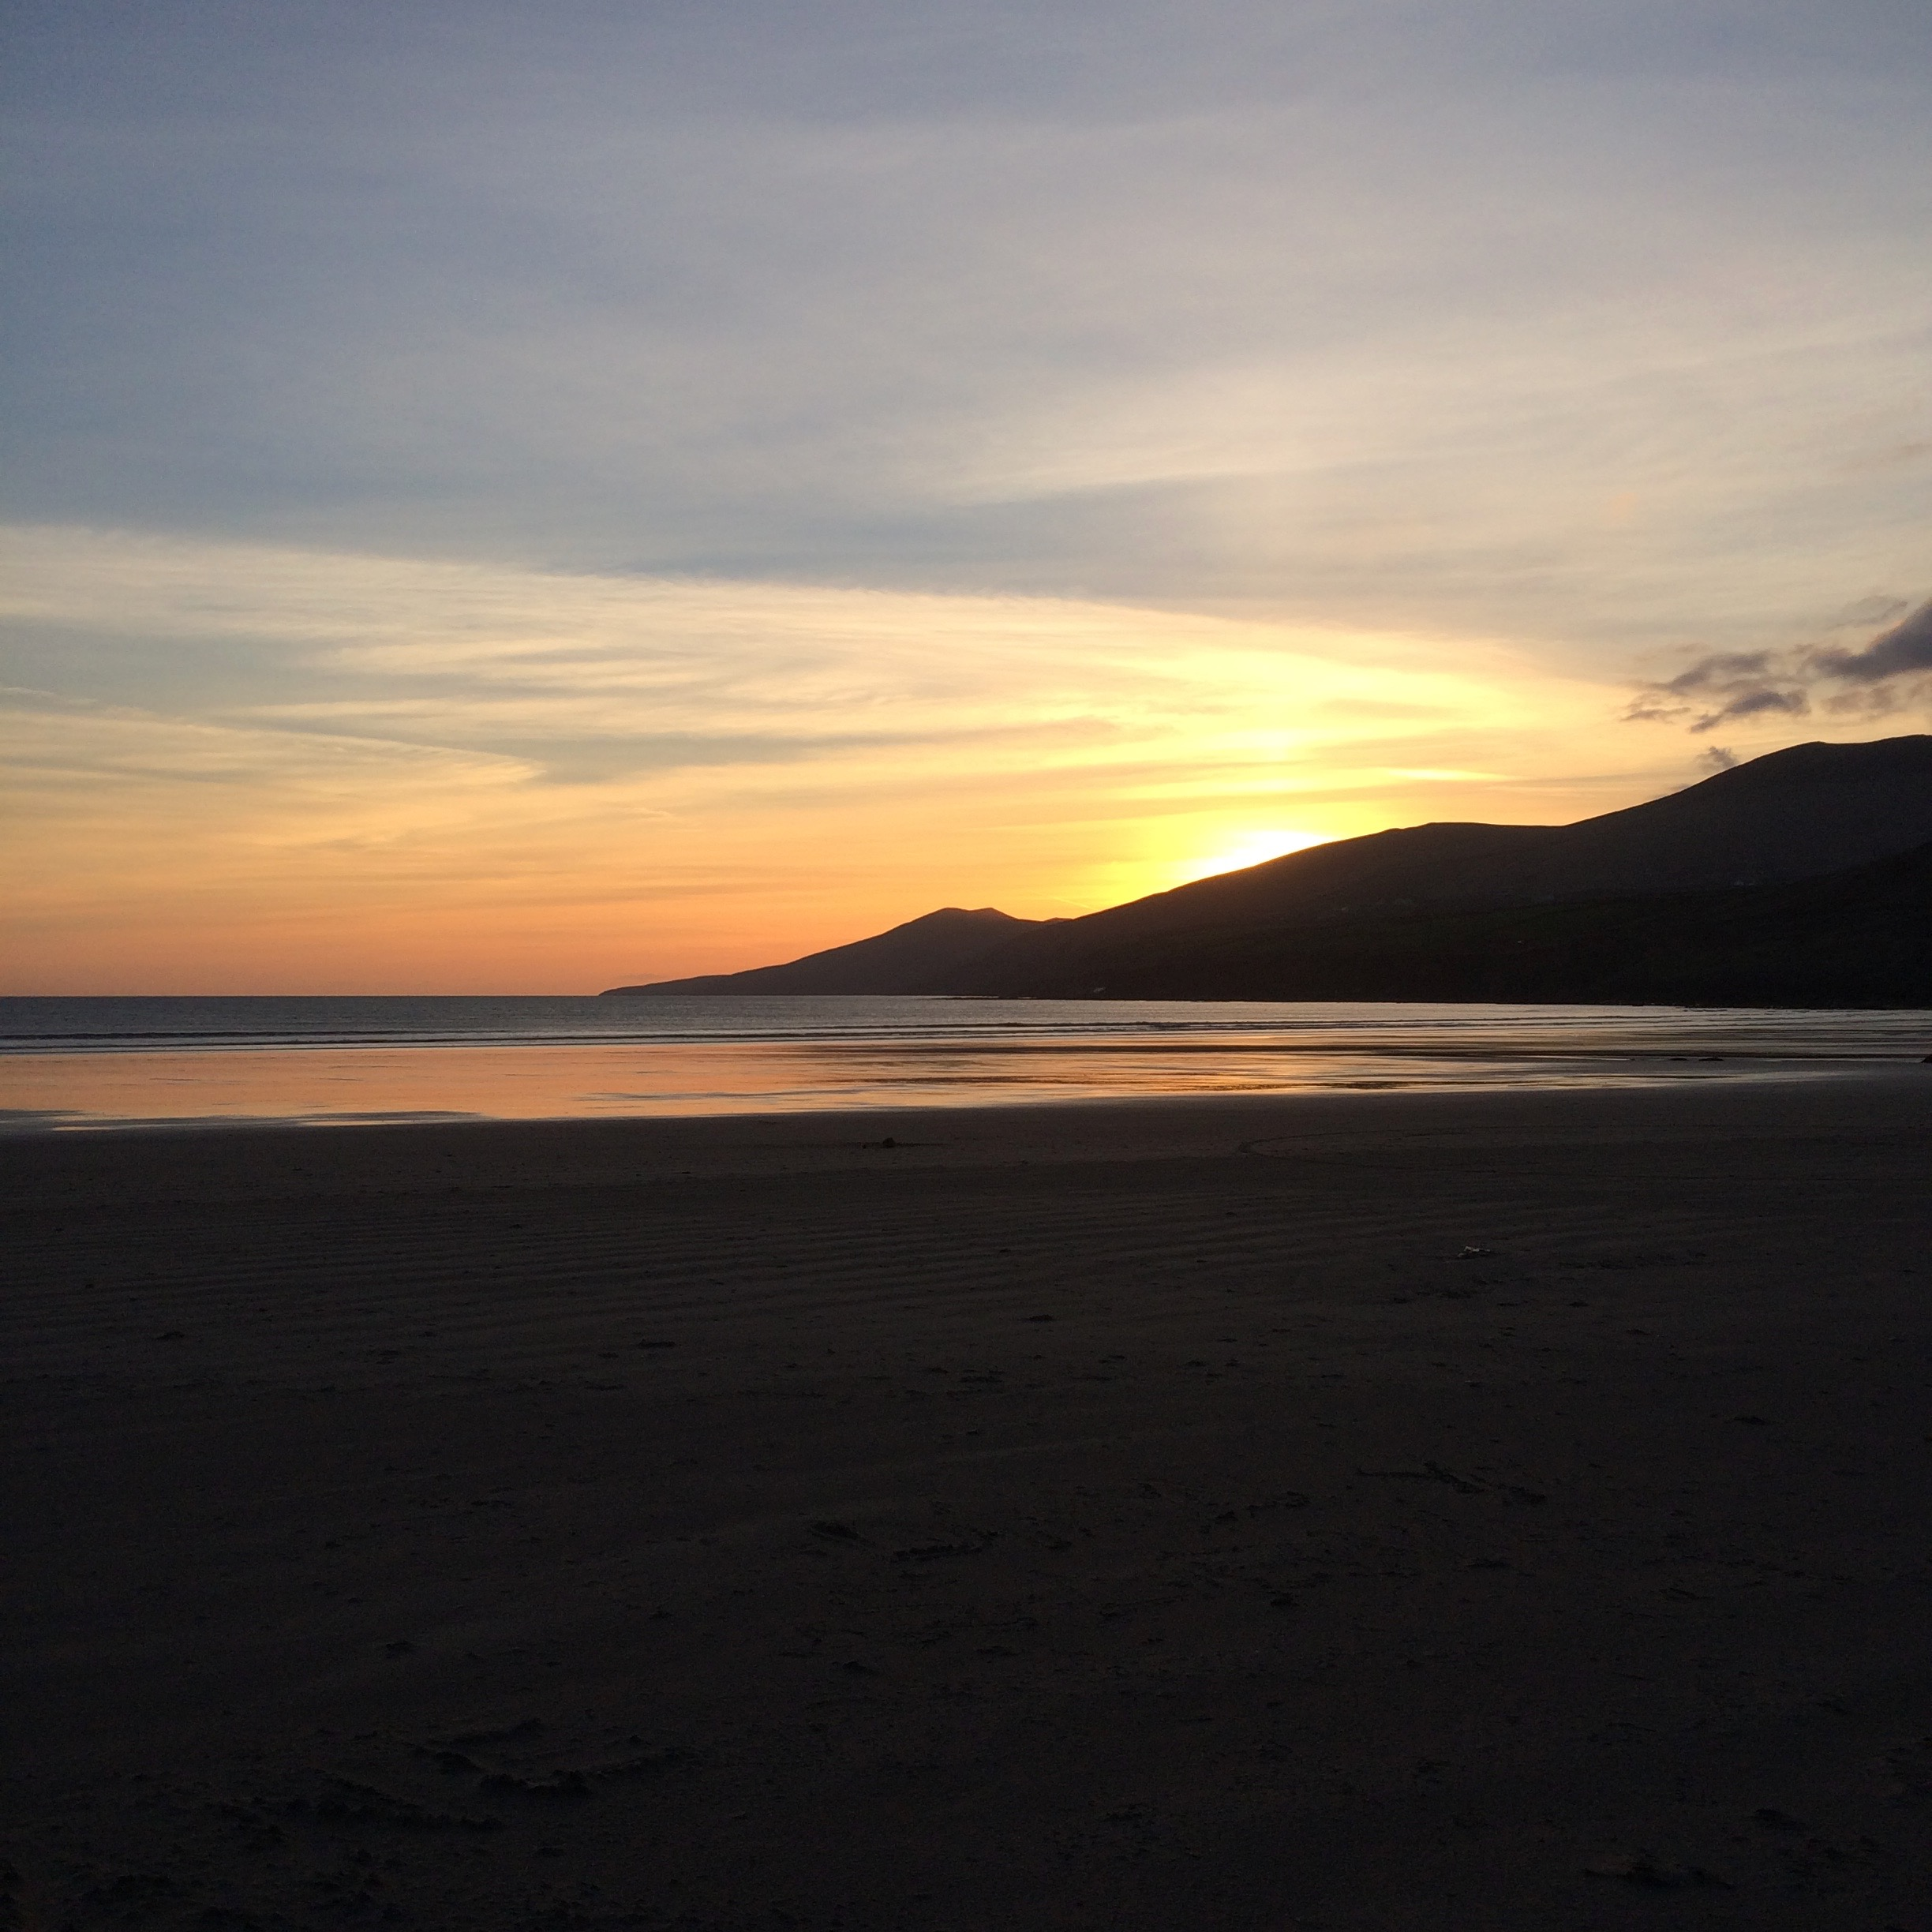 Incredible sunset on arriving on the Dingle Peninsula, Ireland